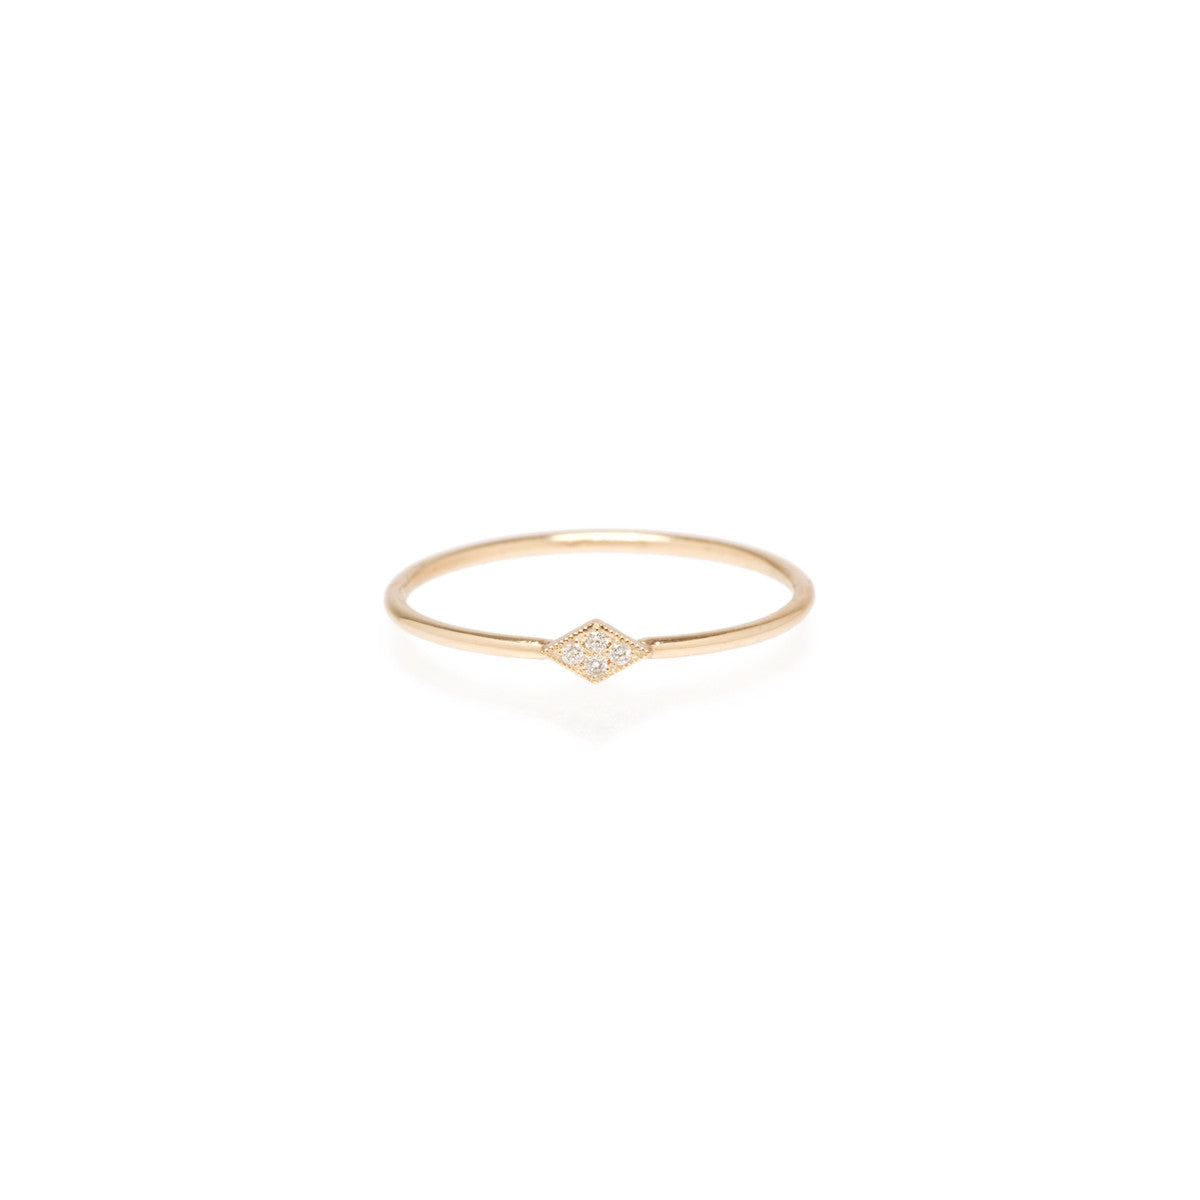 Zoë Chicco 14kt Yellow Gold Itty Bitty Pave Diamond Shape Ring